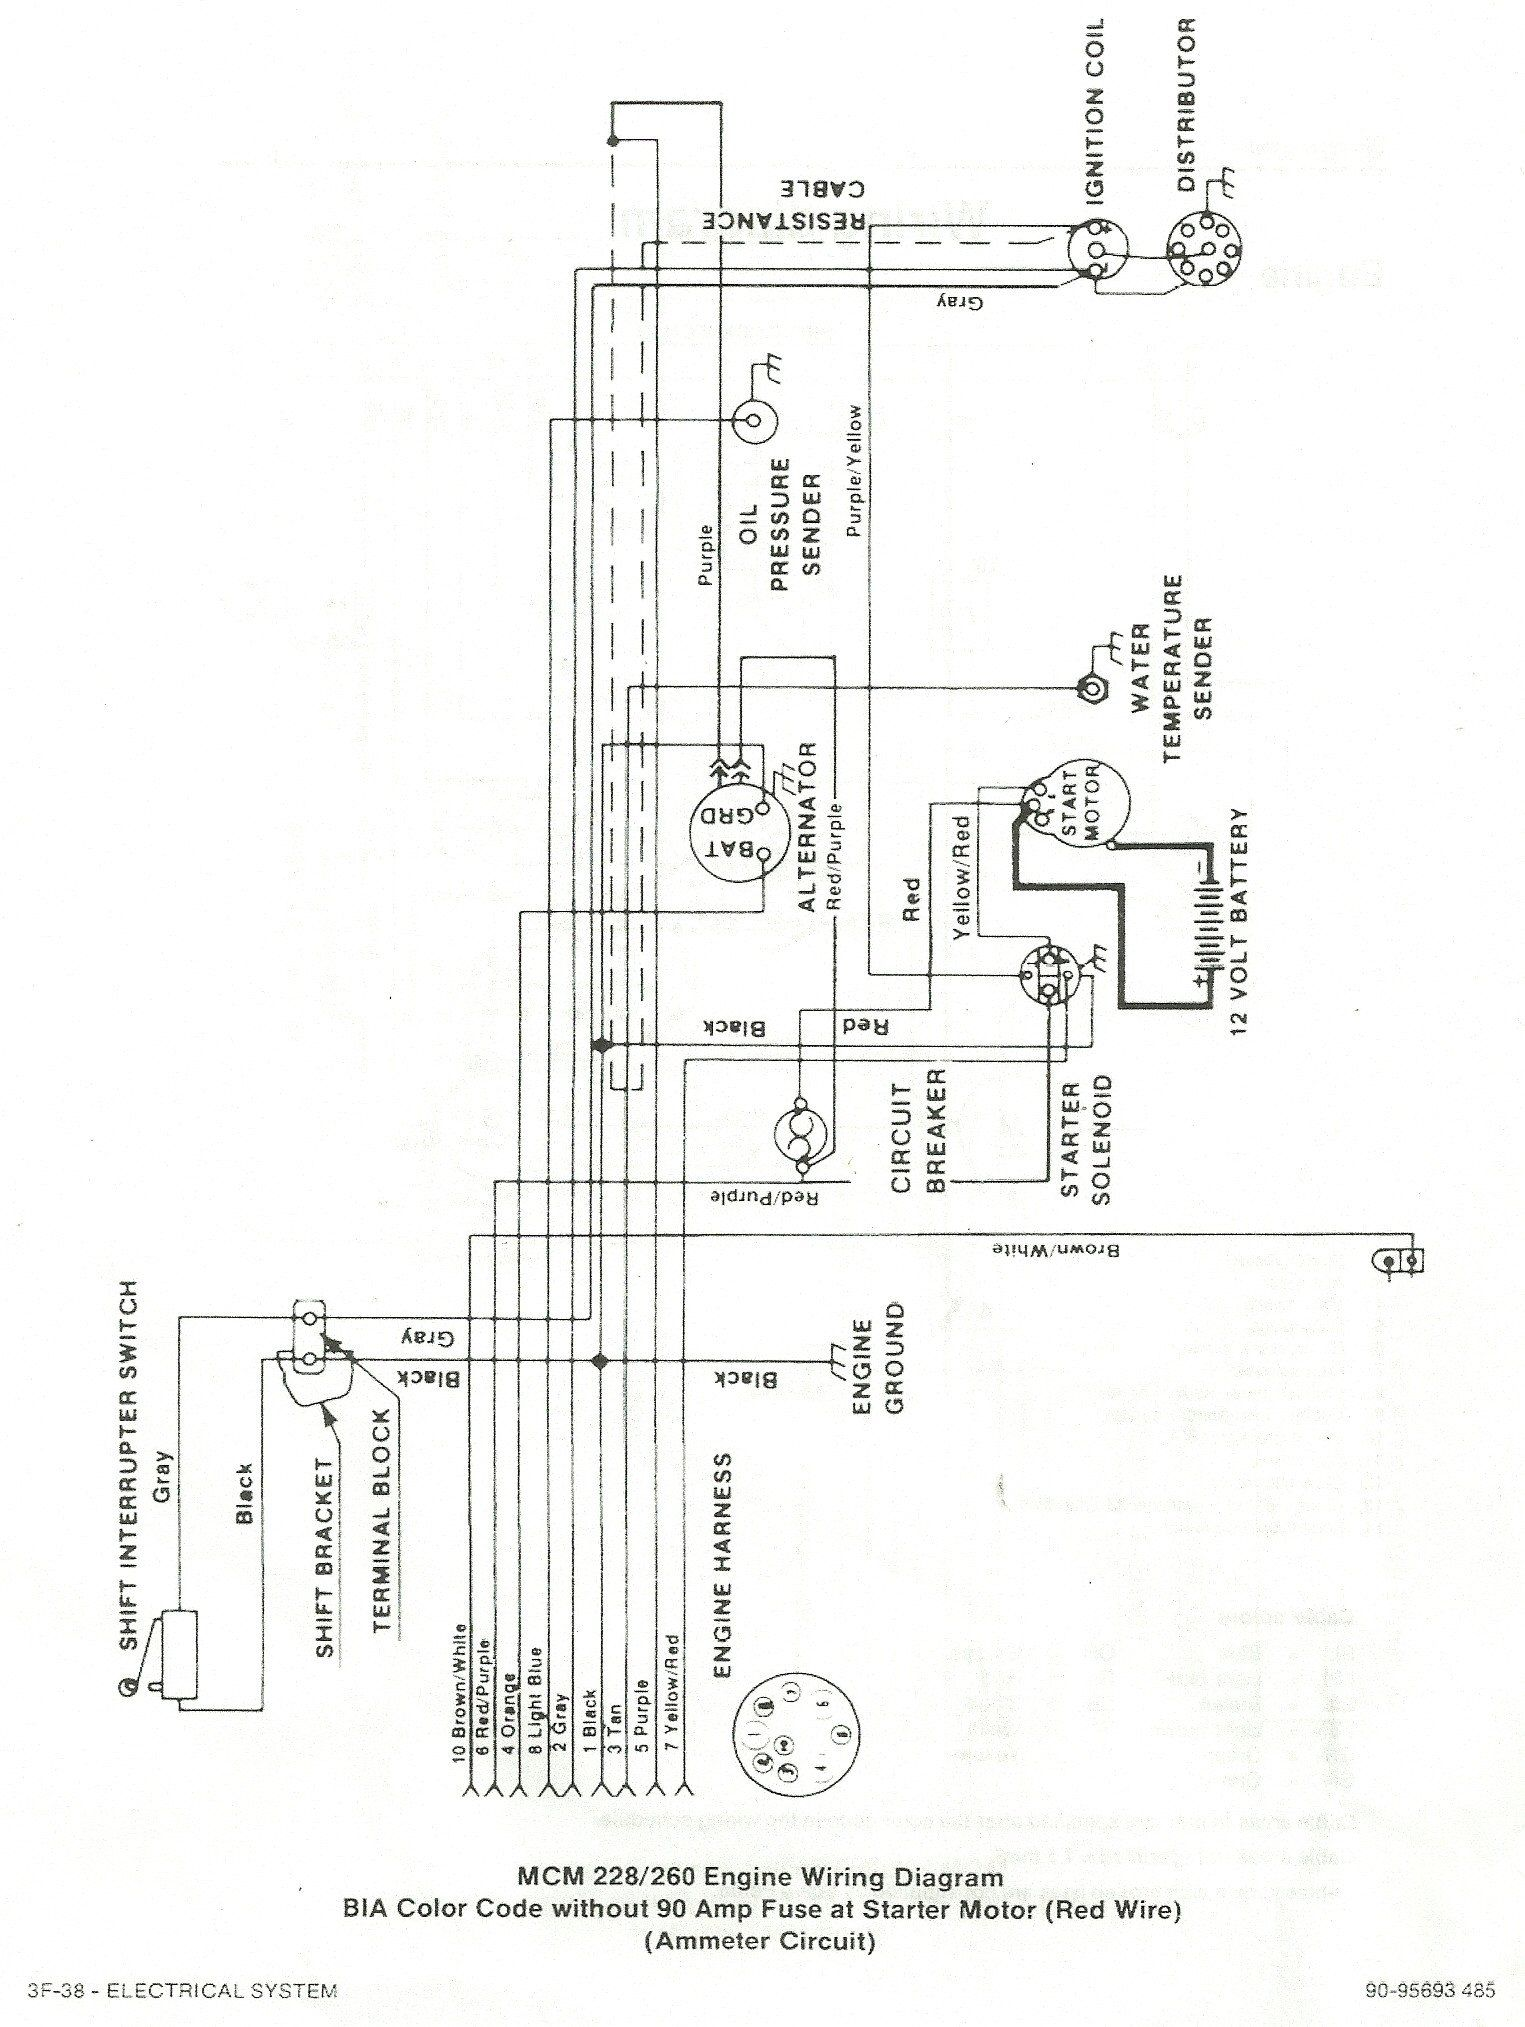 medium resolution of 7 4 mercruiser engine diagram wiring diagram toolbox7 4 mercruiser wiring diagram wiring diagrams trigg 7